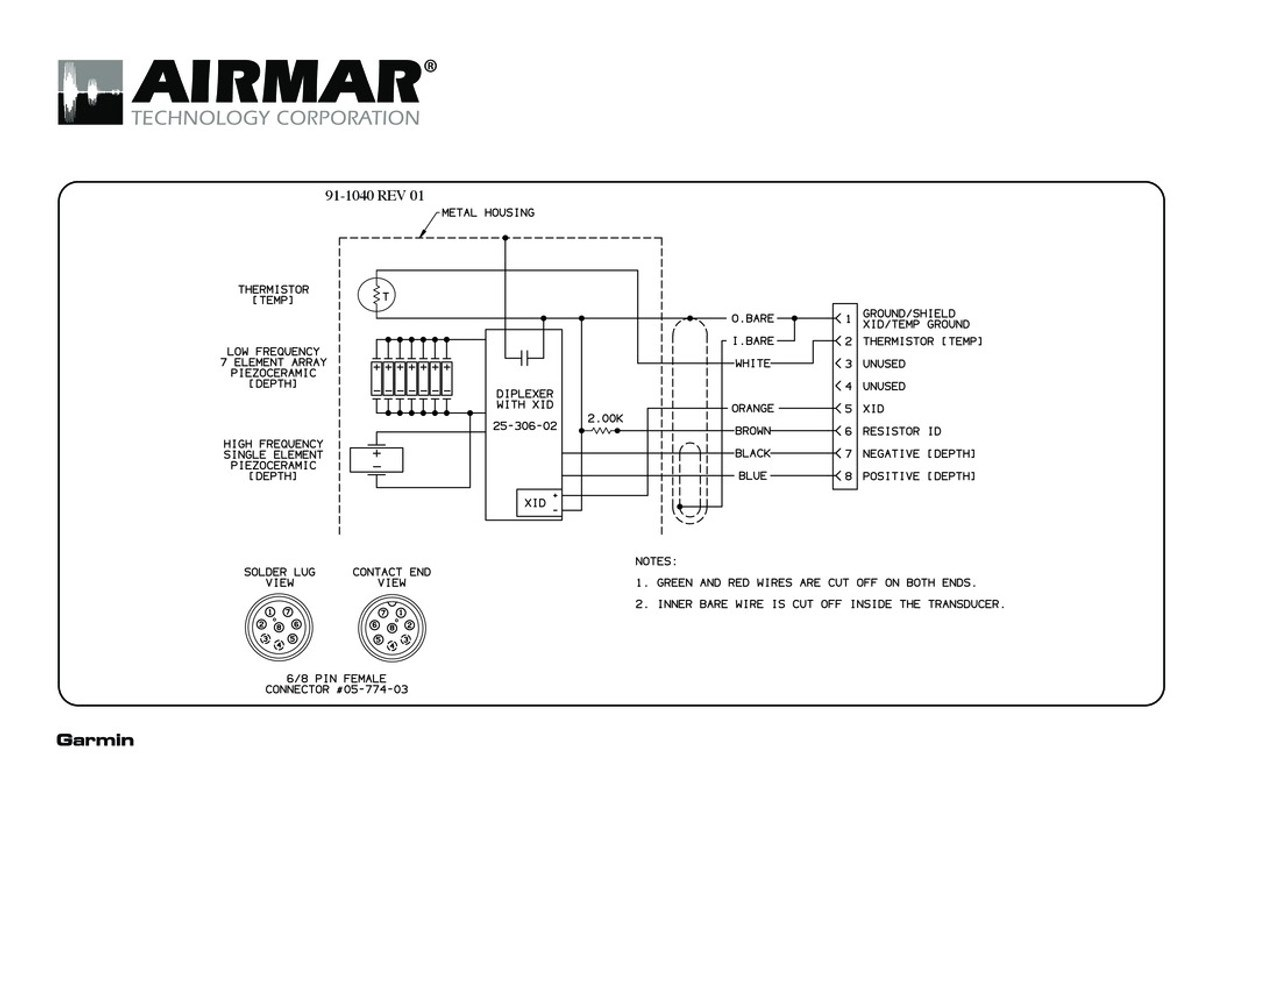 Airmar Wiring Diagram Garmin 1kw 8 pin (D,T) | Blue Bottle Marine